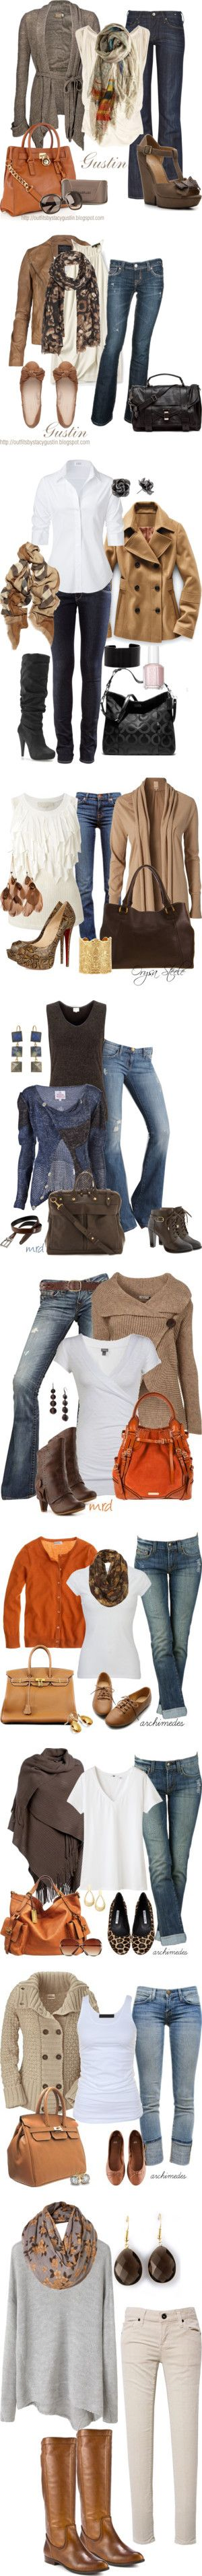 """fall casual"" by jesnik ❤ liked on Polyvore, love fall outfits!"